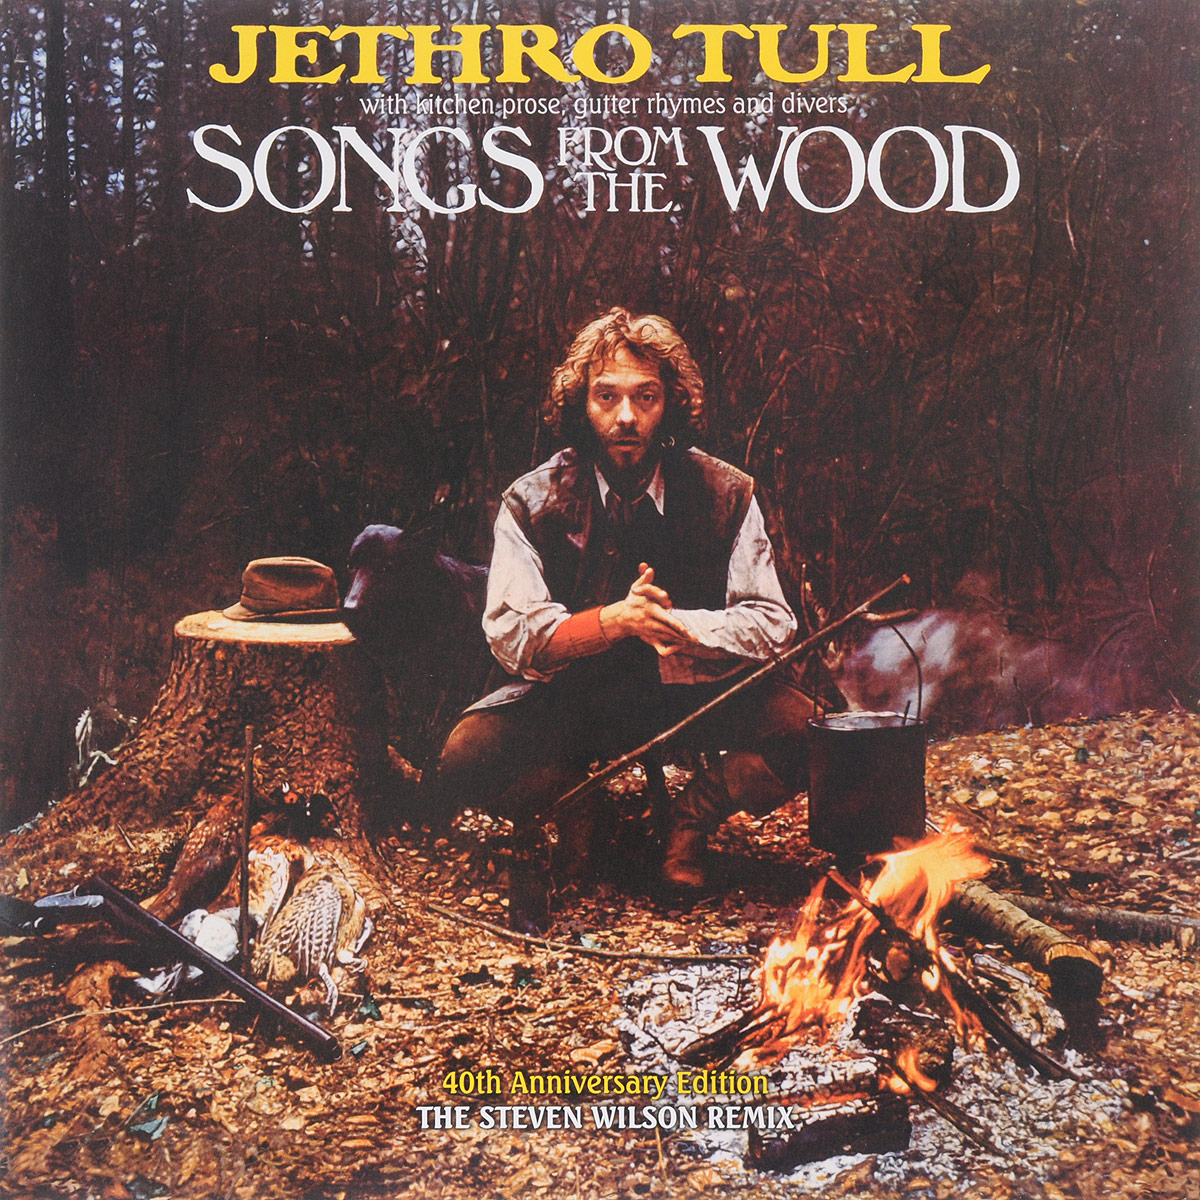 Jethro Tull Jethro Tull. Songs From The Wood (LP) jethro tull jethro tull too old to rock n roll too young to die the tv special edition 2 cd 2 dvd